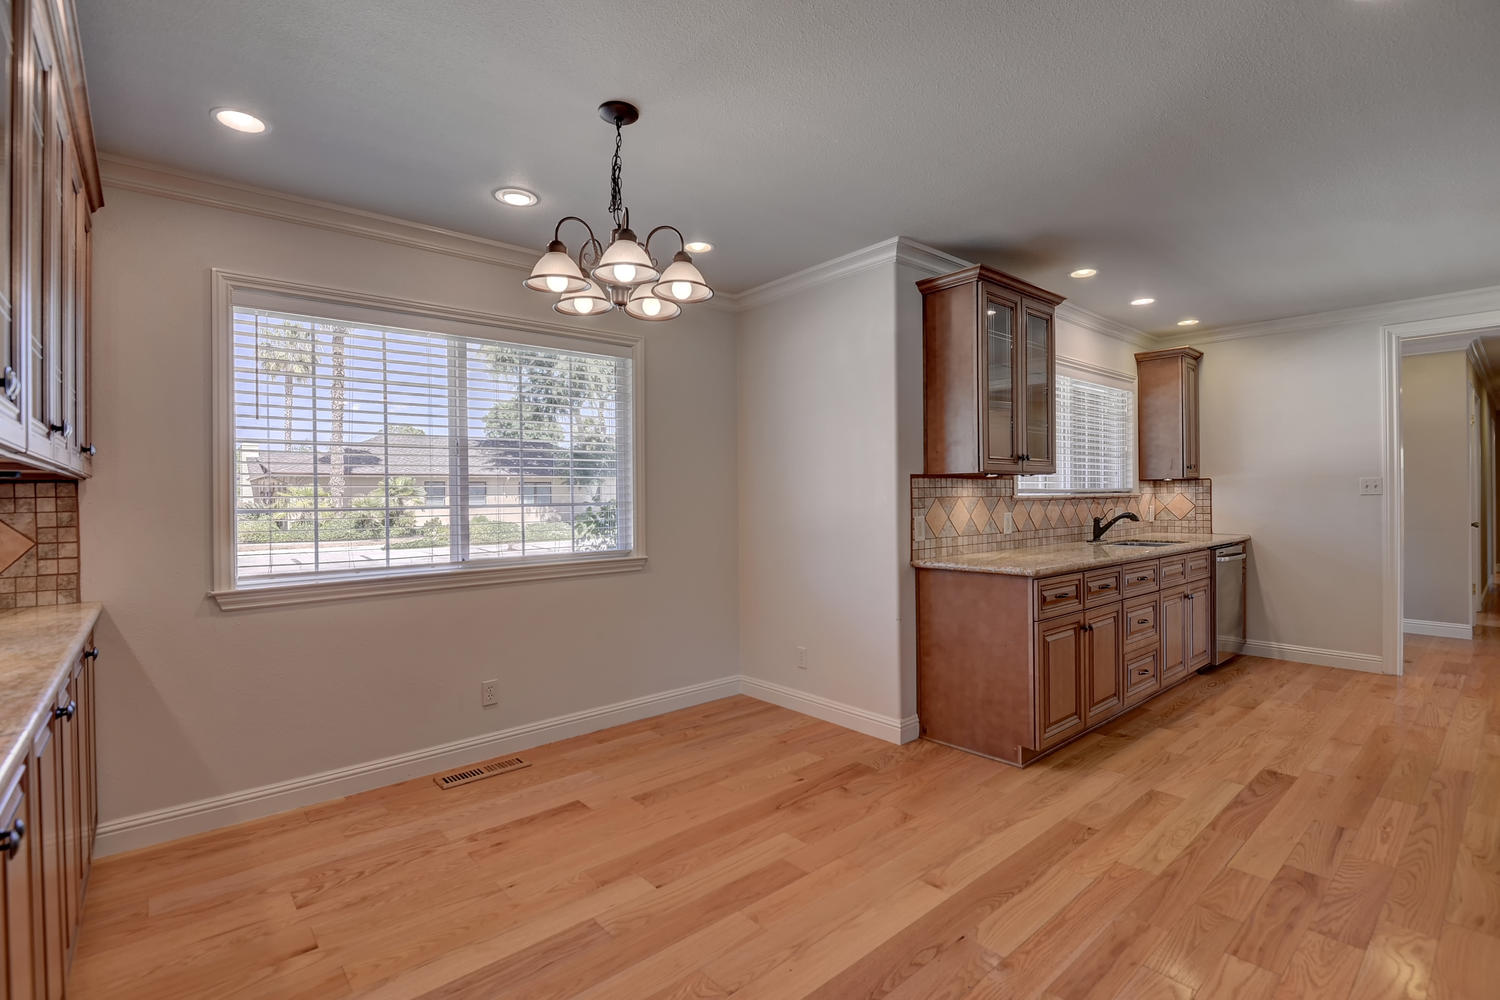 Eat In Dining Area to Kitchen.jpg